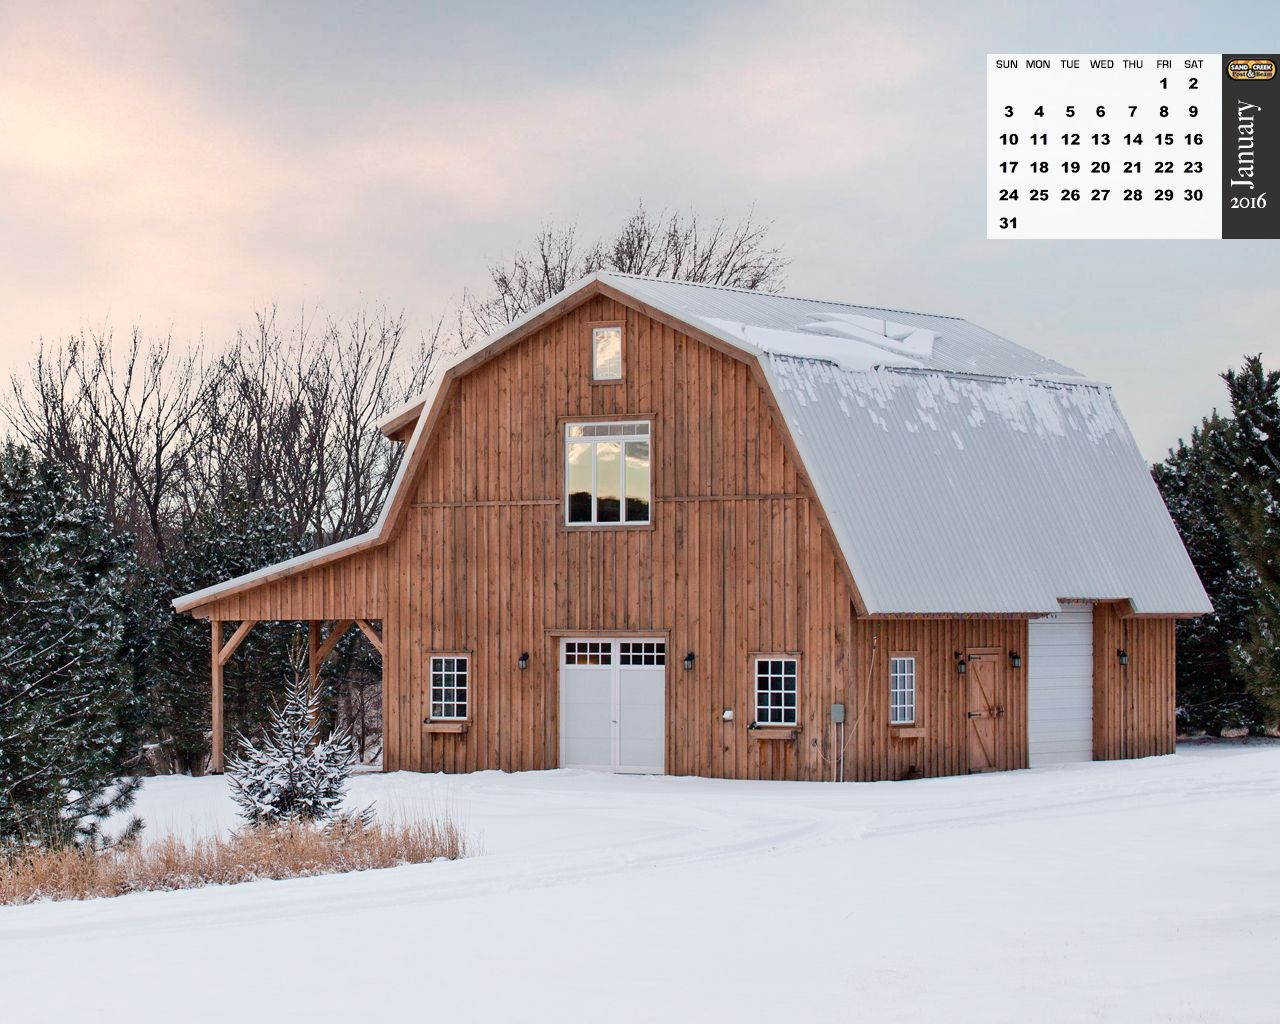 Traditional wood barn projects photo galleries ponderosa county horse gambrel combination - Gambrel pole barns style ...